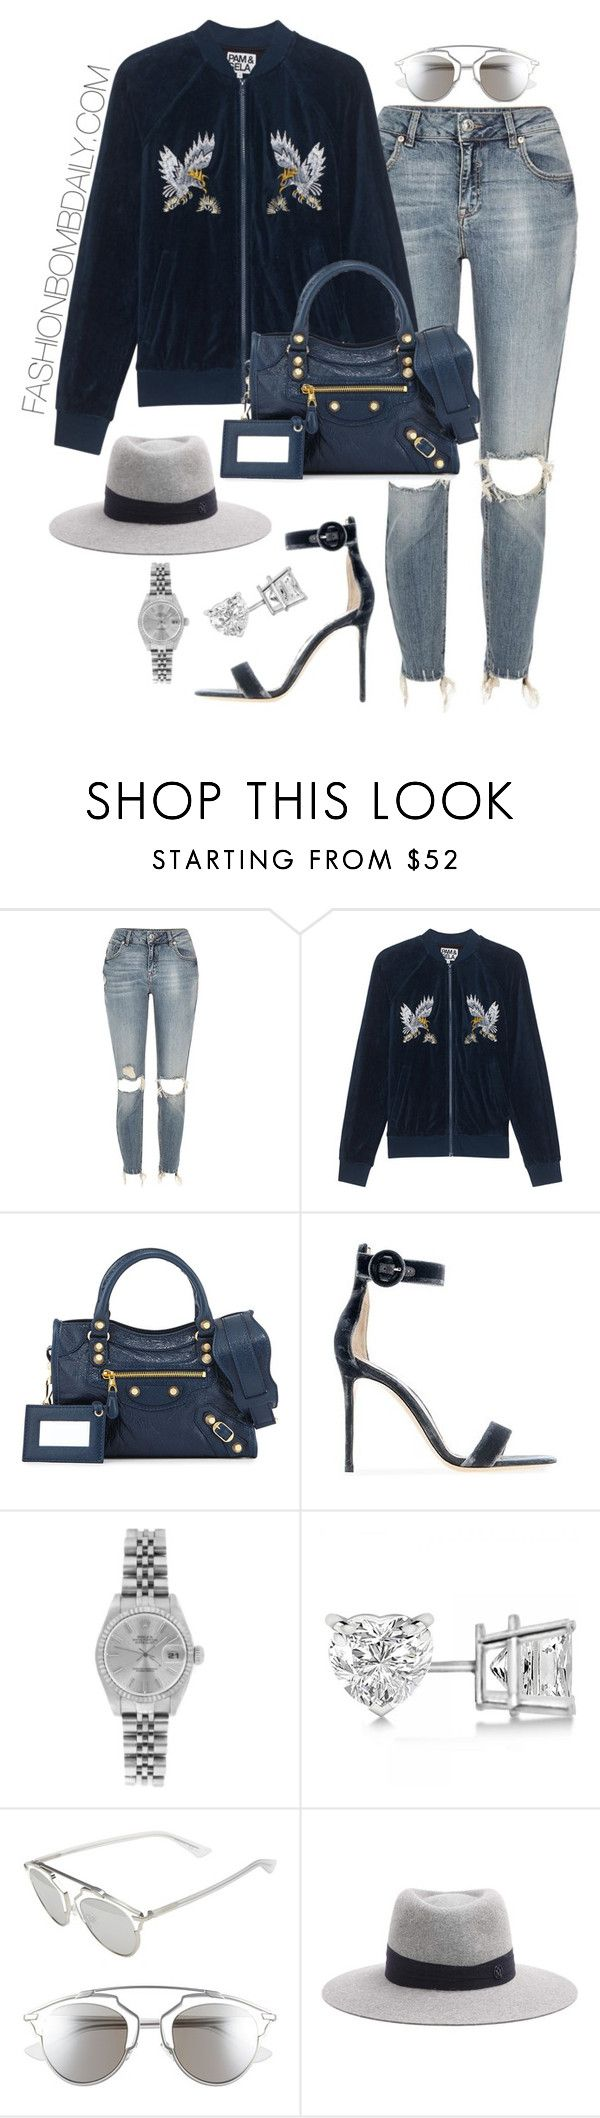 """""""Untitled #1954"""" by dnicoleg ❤ liked on Polyvore featuring River Island, Pam & Gela, Balenciaga, Gianvito Rossi, Rolex, Allurez, Christian Dior and Maison Michel"""